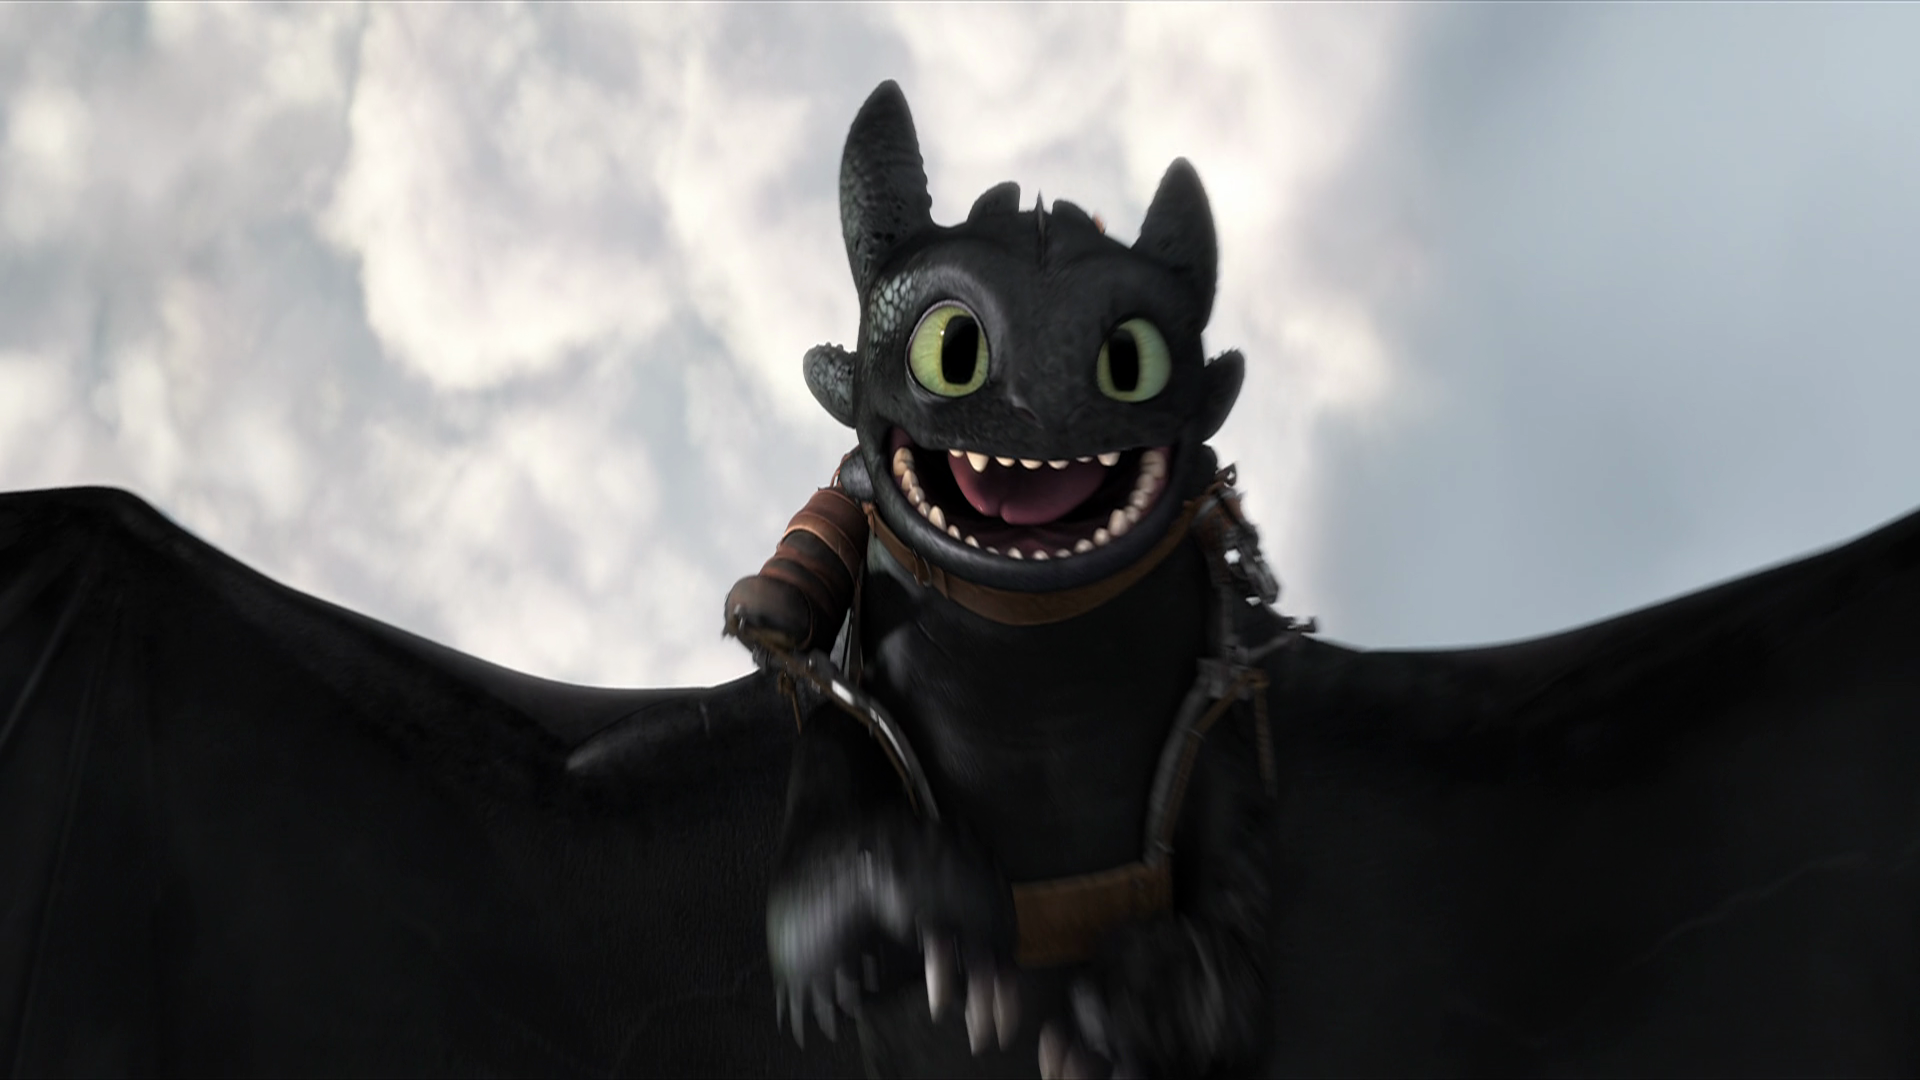 139 How To Train Your Dragon 2 HD Wallpapers Backgrounds 1920x1080